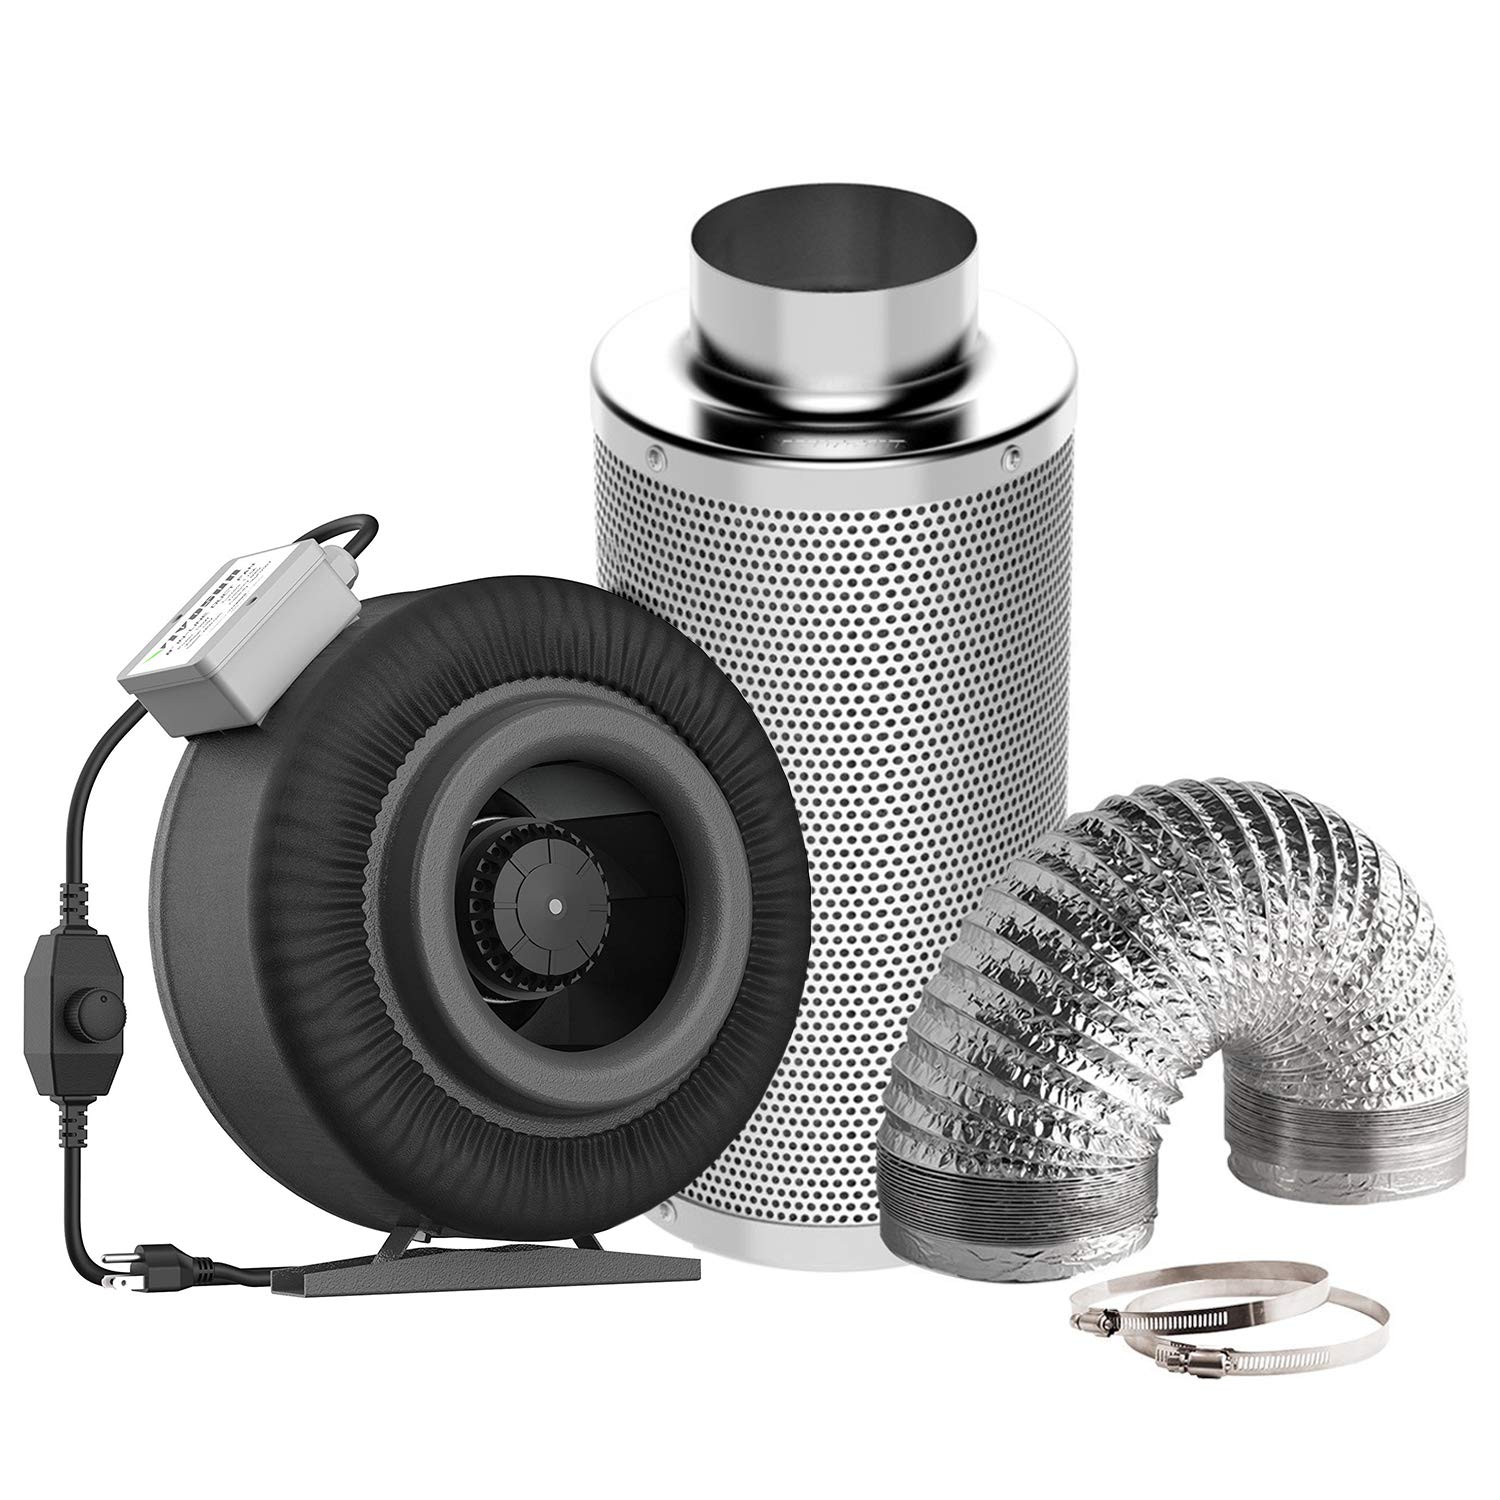 VIVOSUN Air Filtration Kit: 8 Inch 740 CFM Inline Fan with Speed Controller, 8 Inch Carbon Filter and 25 Feet of Ducting Combo by VIVOSUN (Image #1)